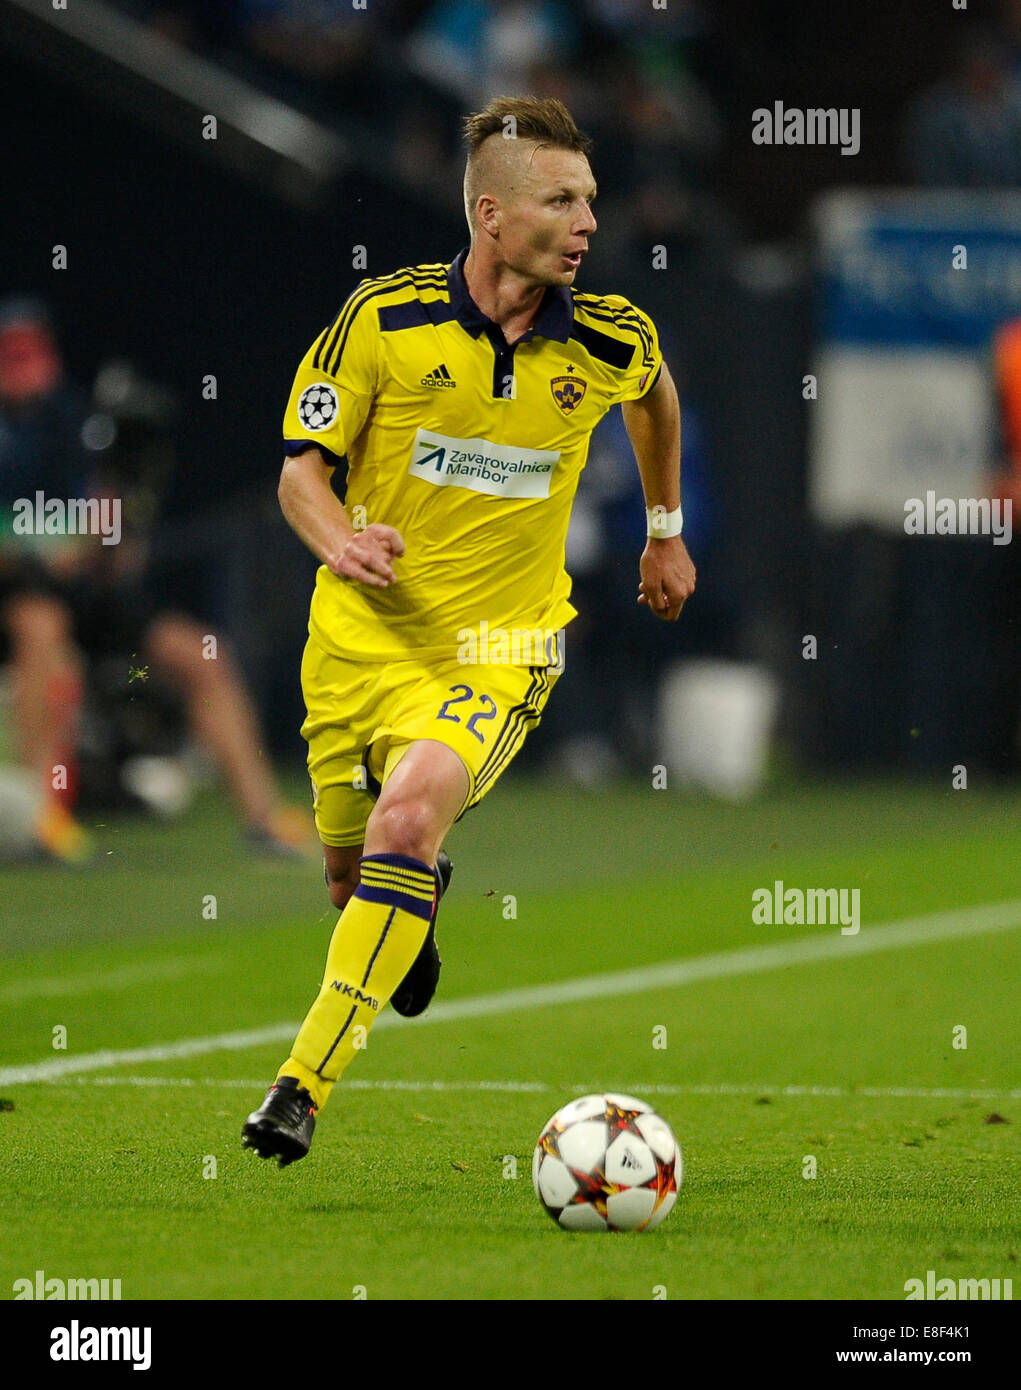 Gelsenkirchen, Germany 30.9.2014, Champions League 14/15 Group stage, Schalke 04 - NK Maribor -  Dare Vrsic - Stock Image